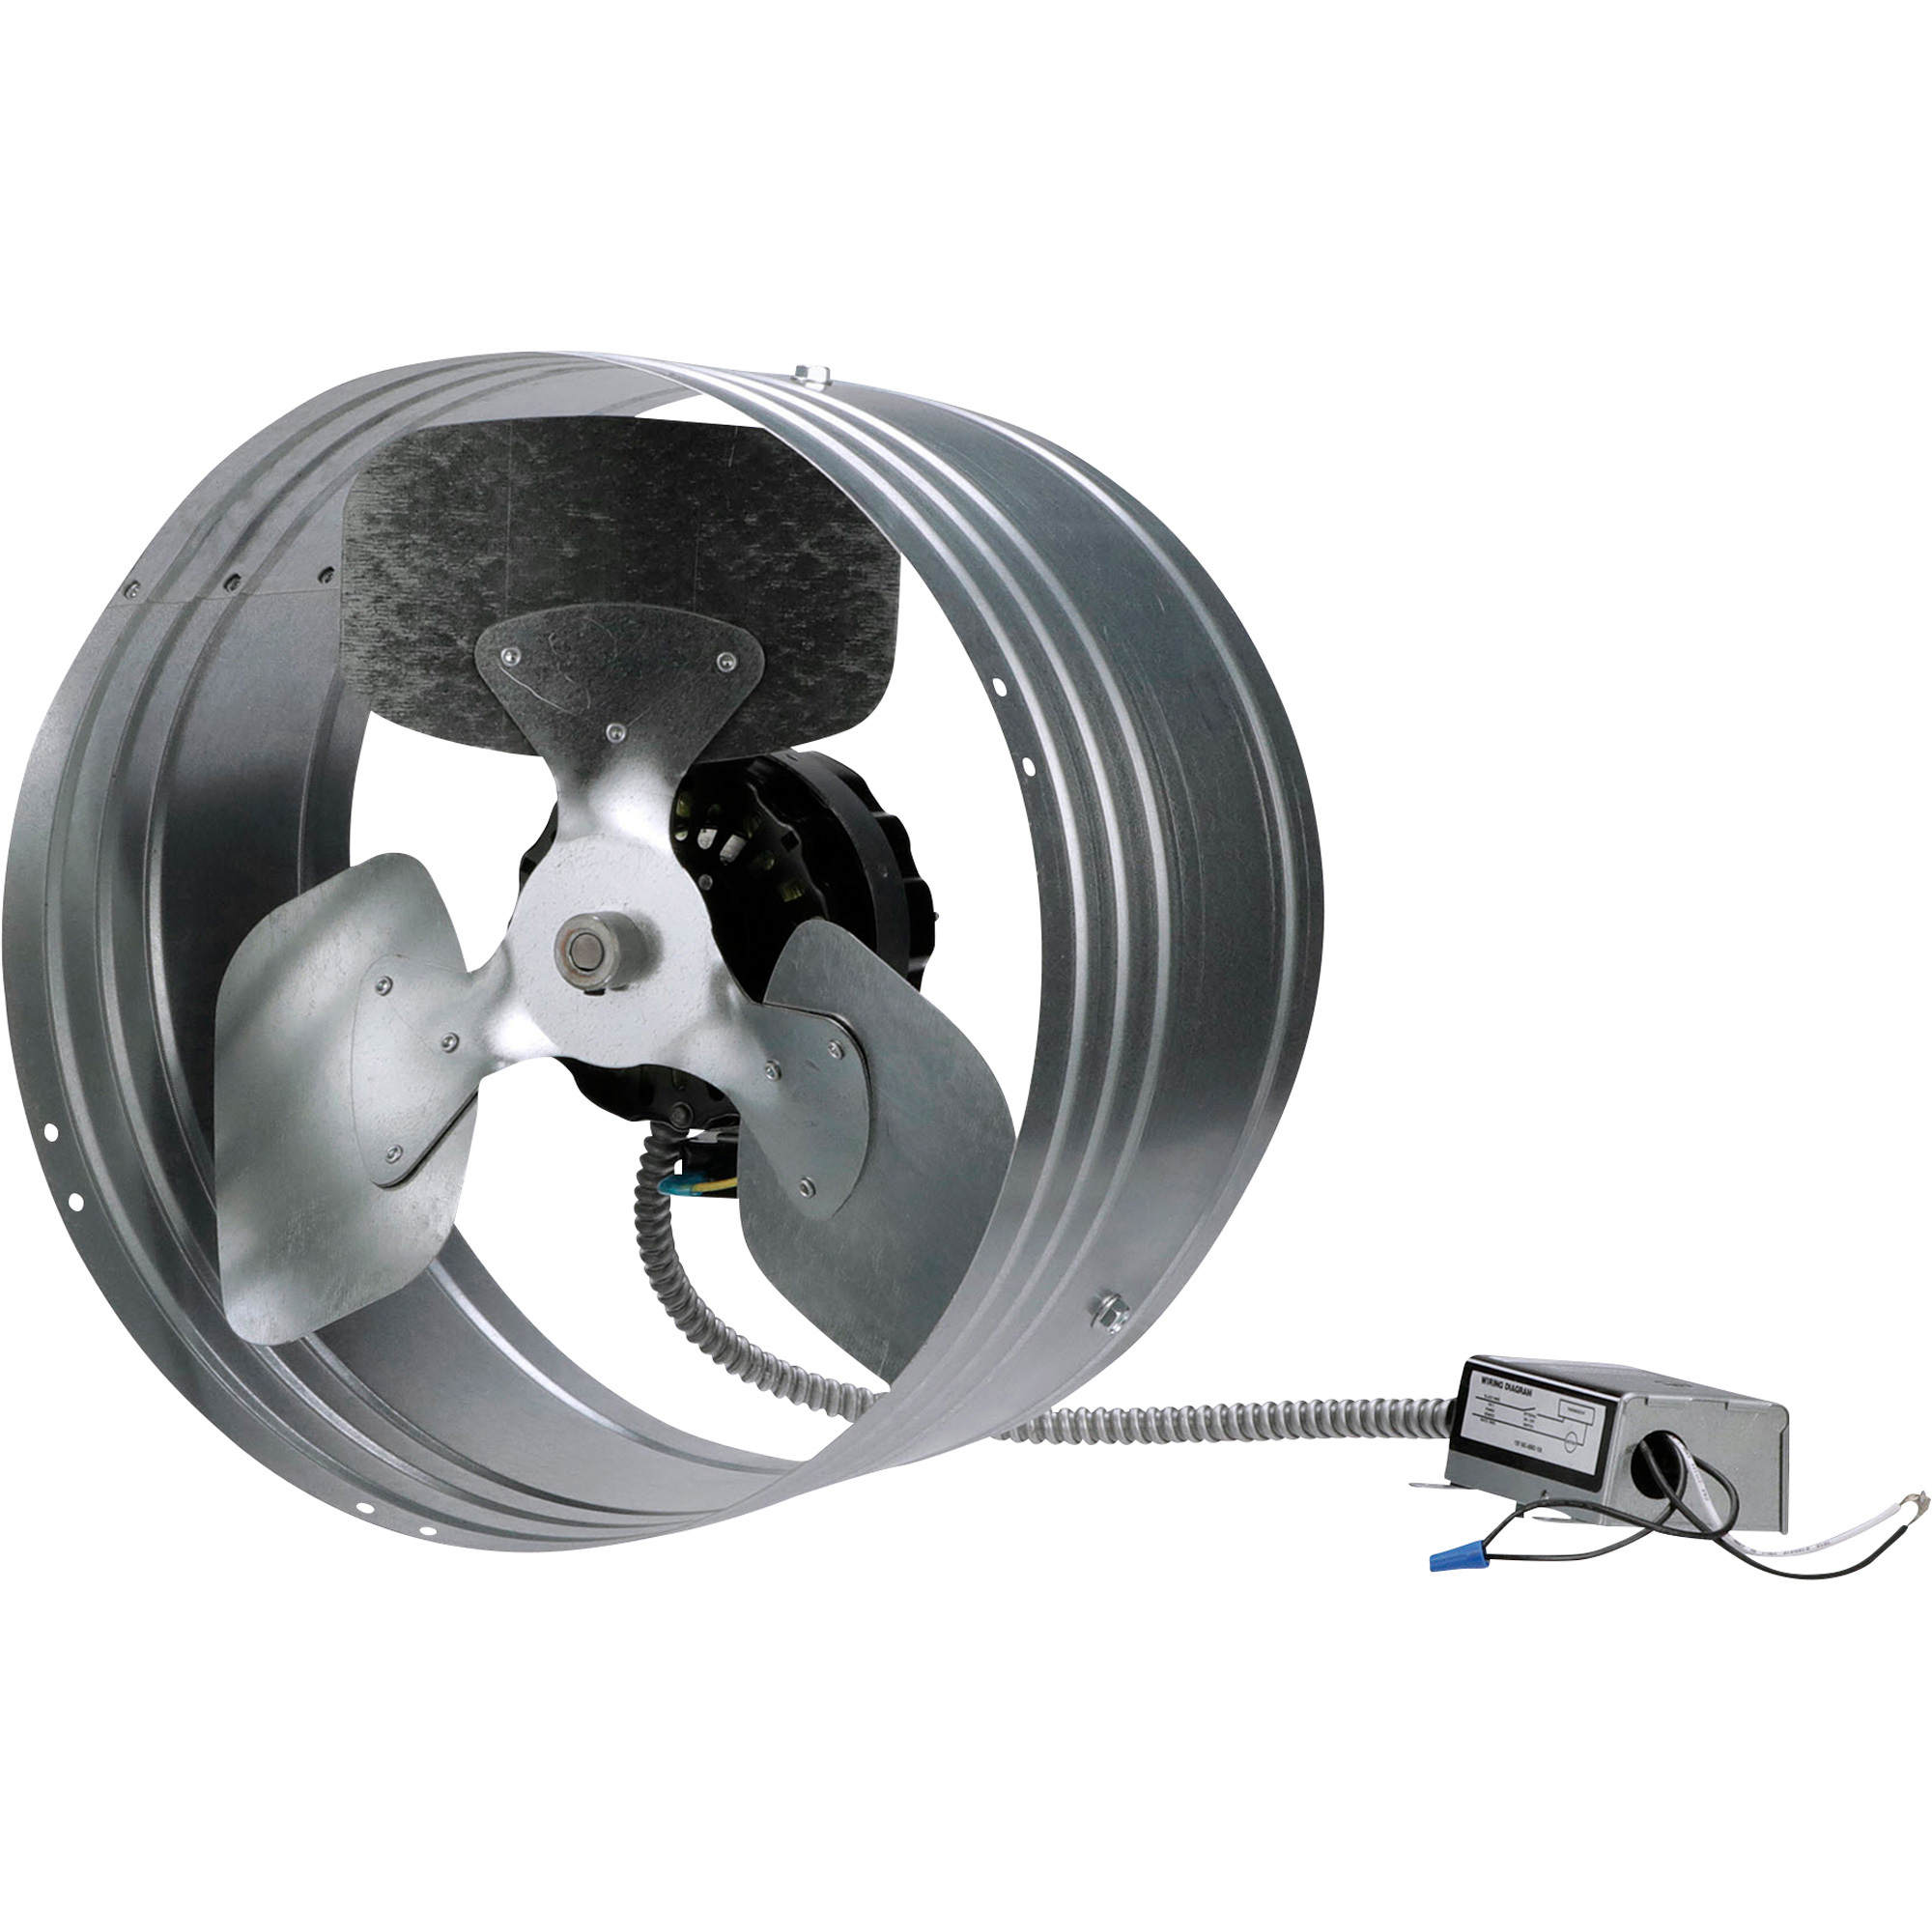 Mountable Exhaust Fan : Tpi gable mount exhaust fan — cfm model gv b